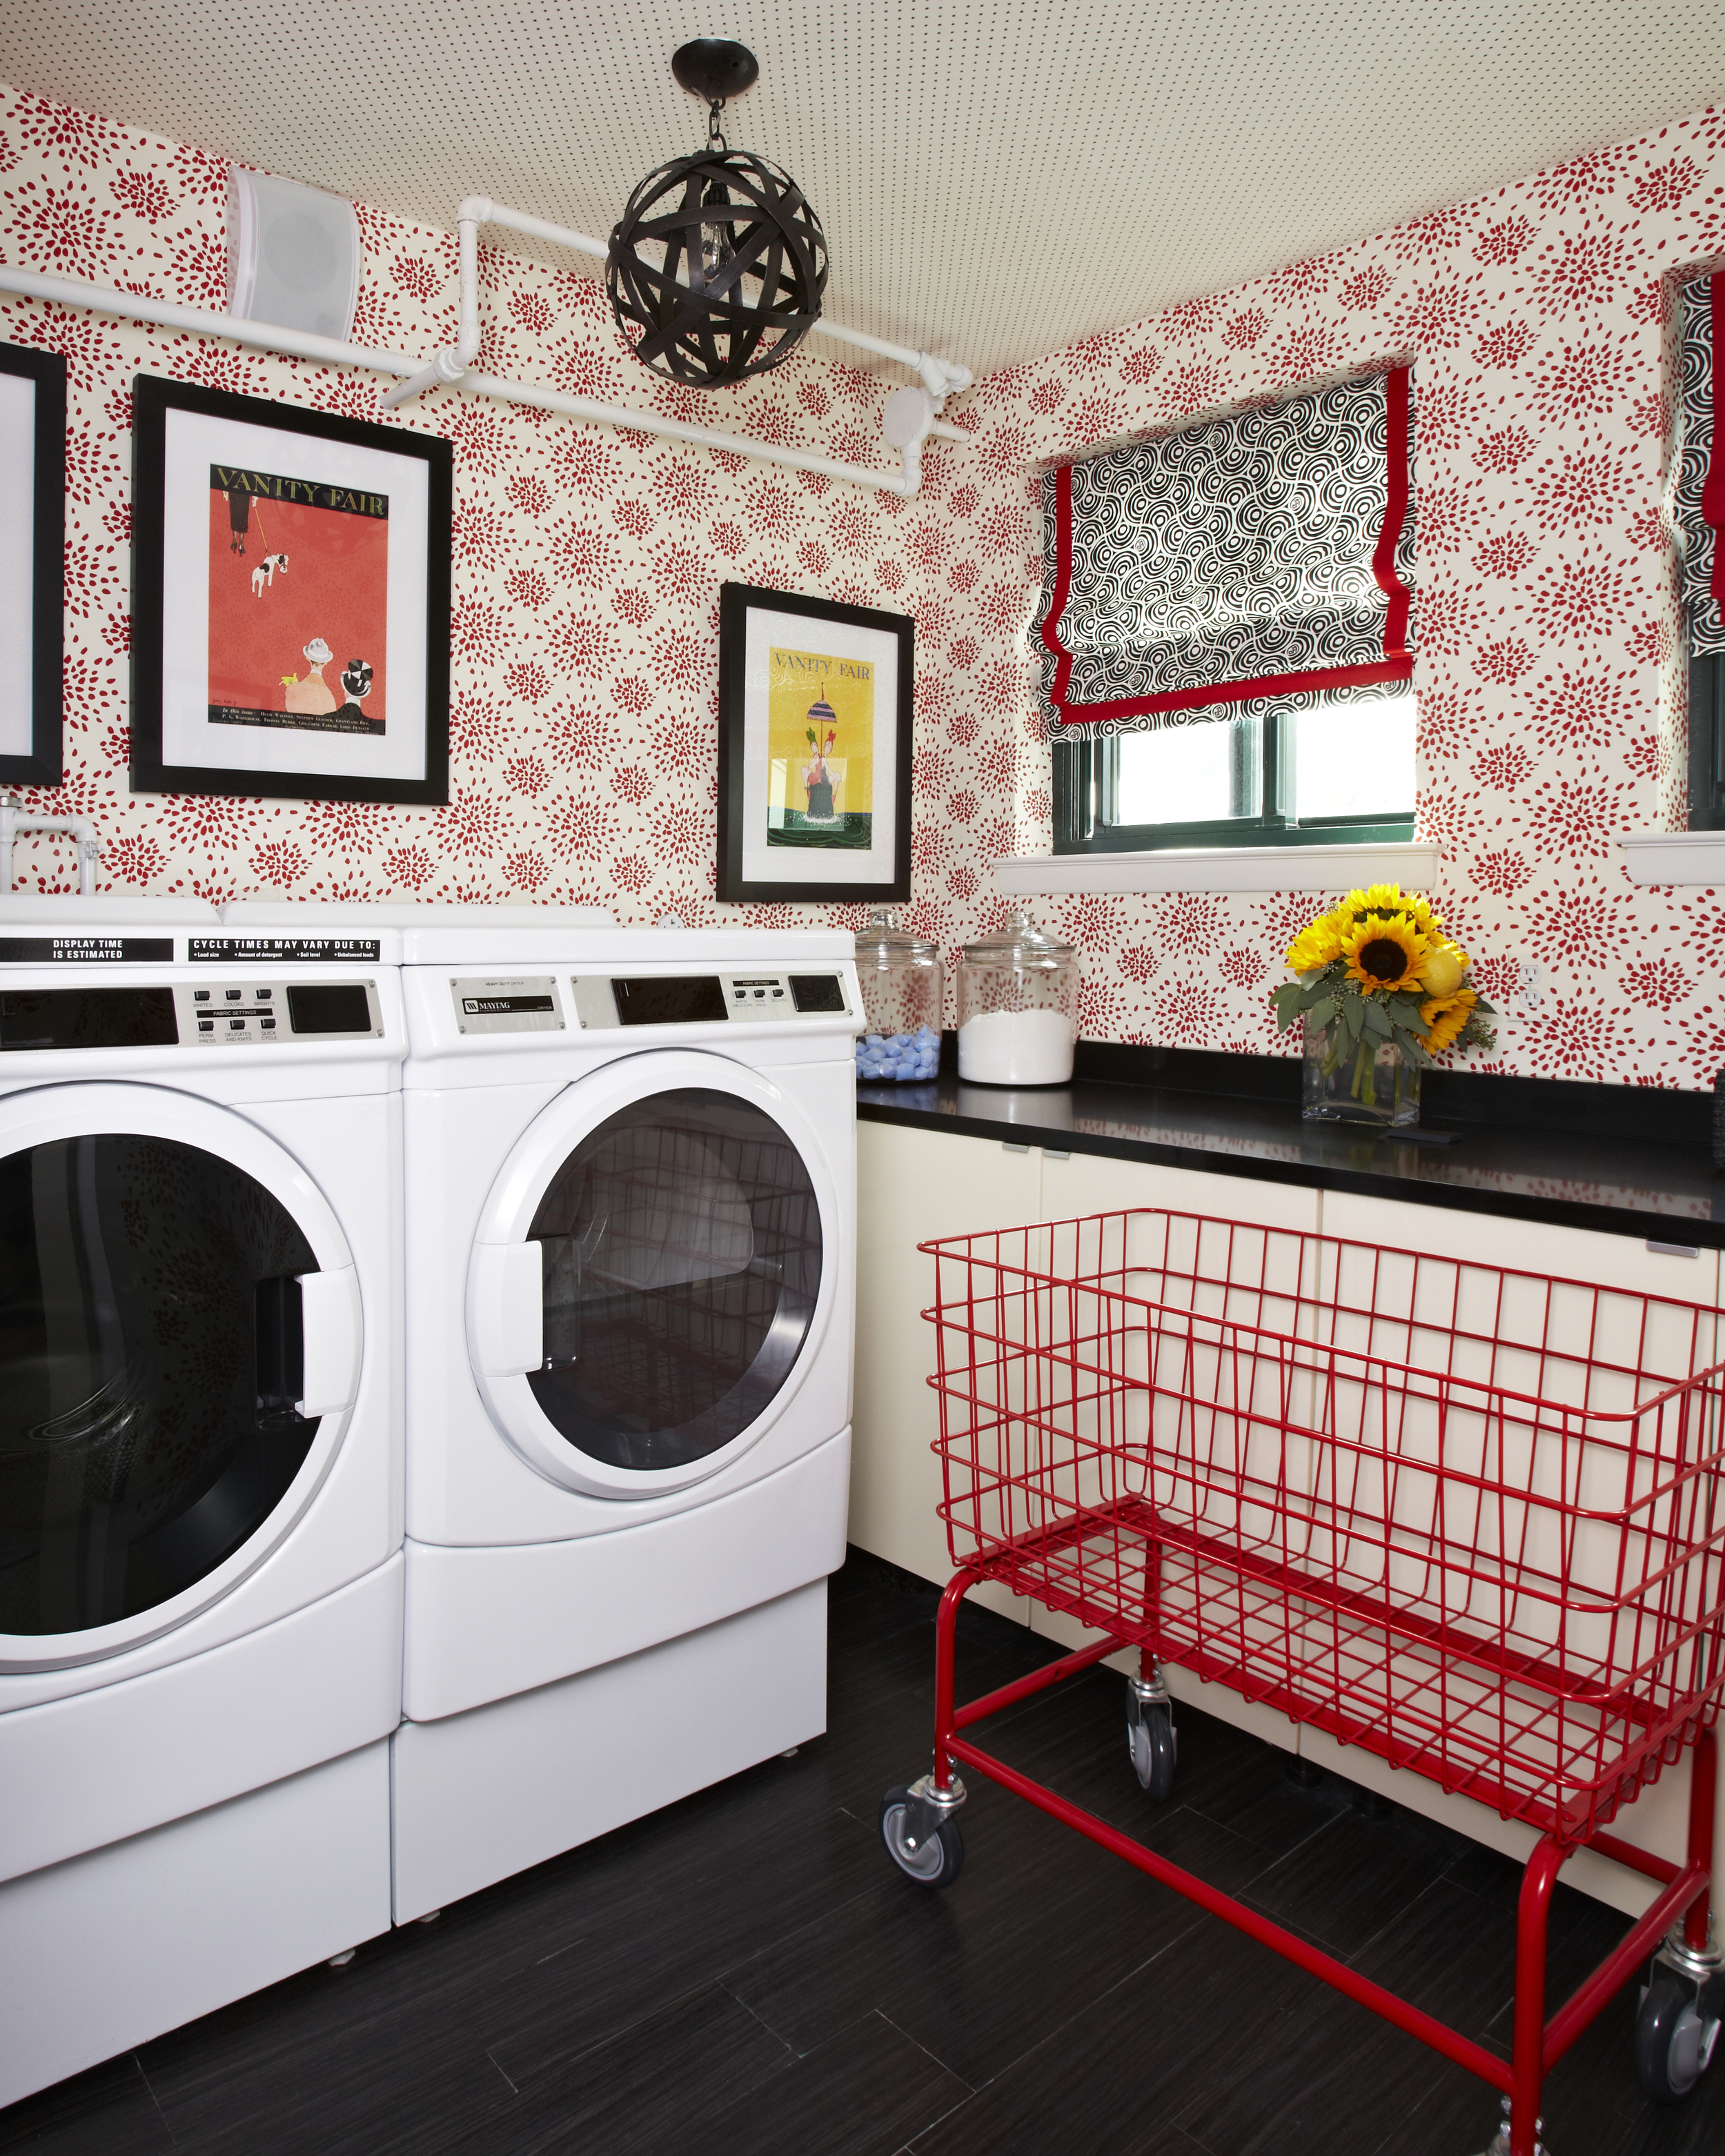 2013-1009_red-laundry-room-003.jpg